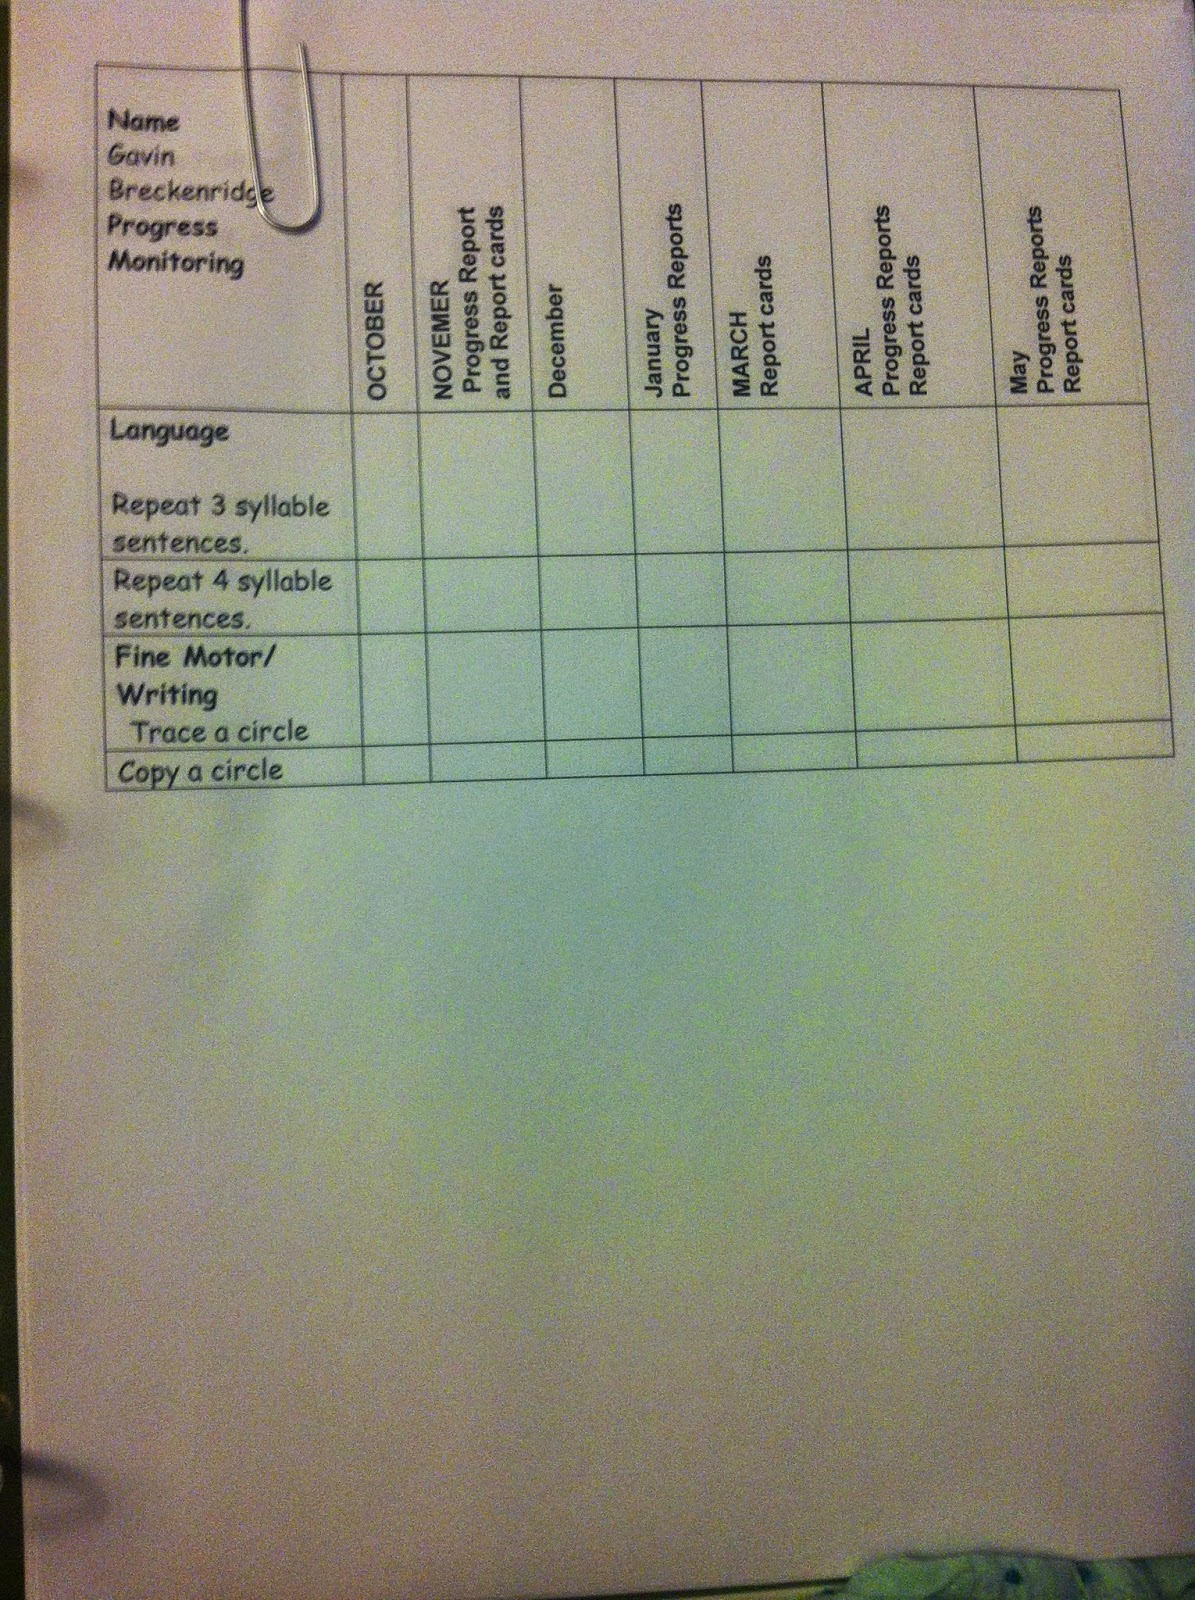 Iep Progress Monitoring | Fun In Ecse intended for Tracing Name Iep Goal